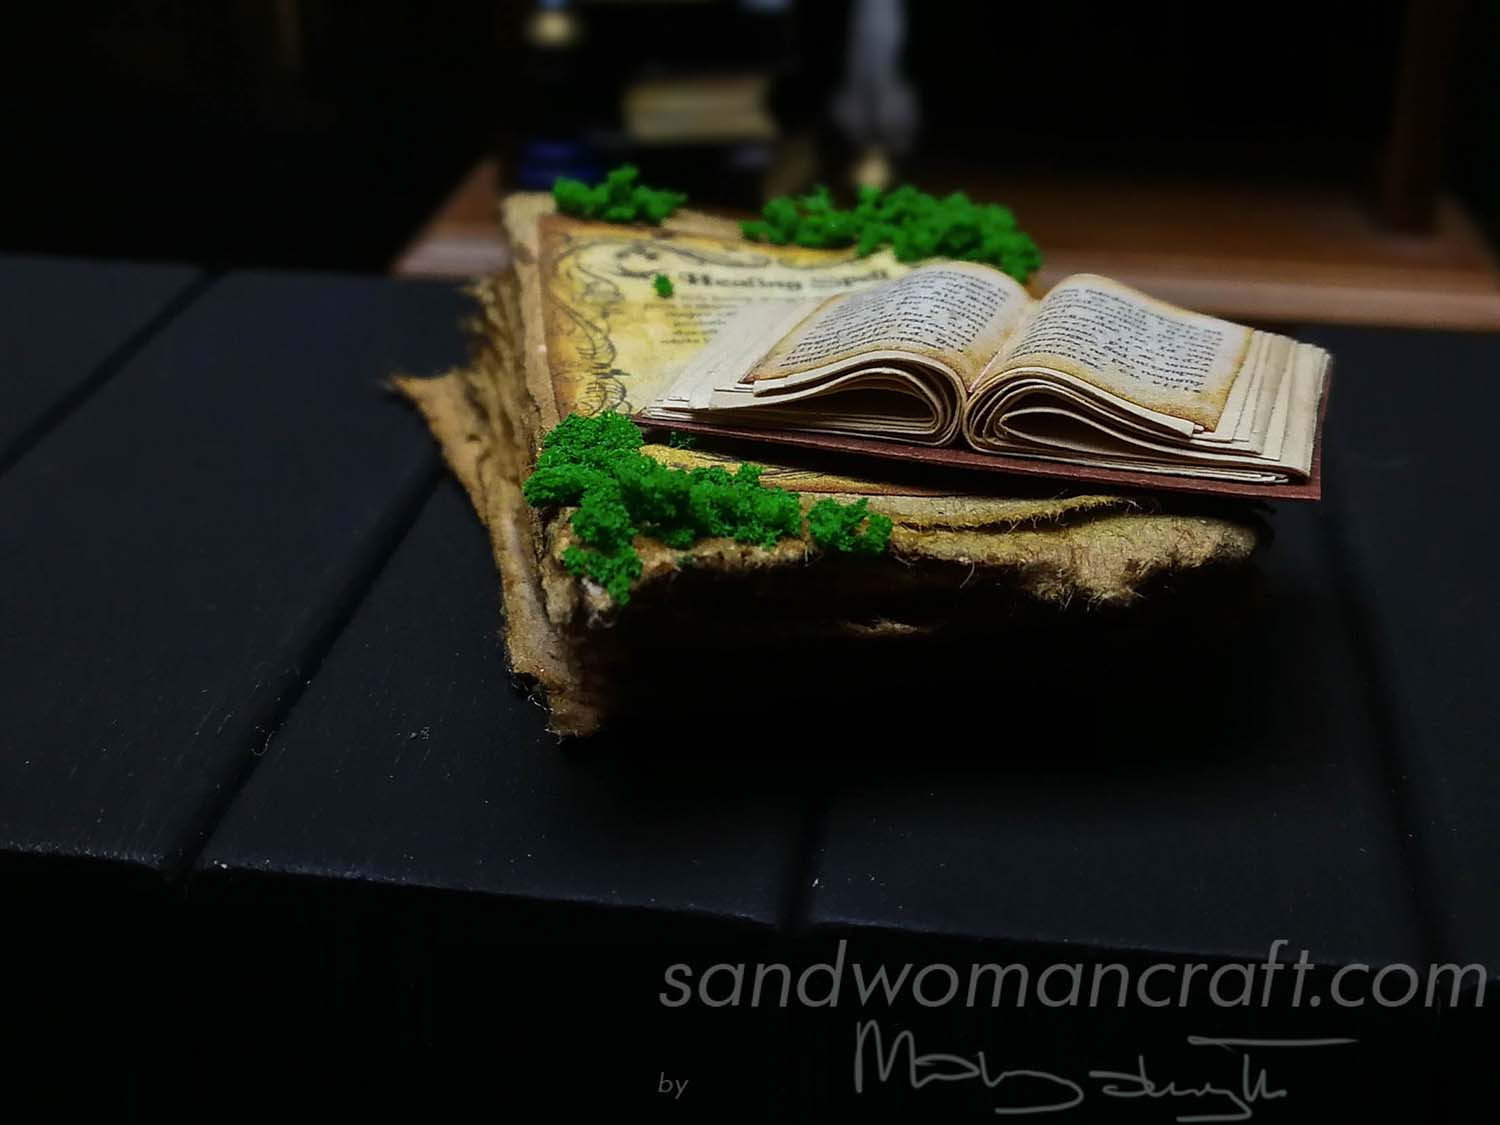 Miniature open book with plain text